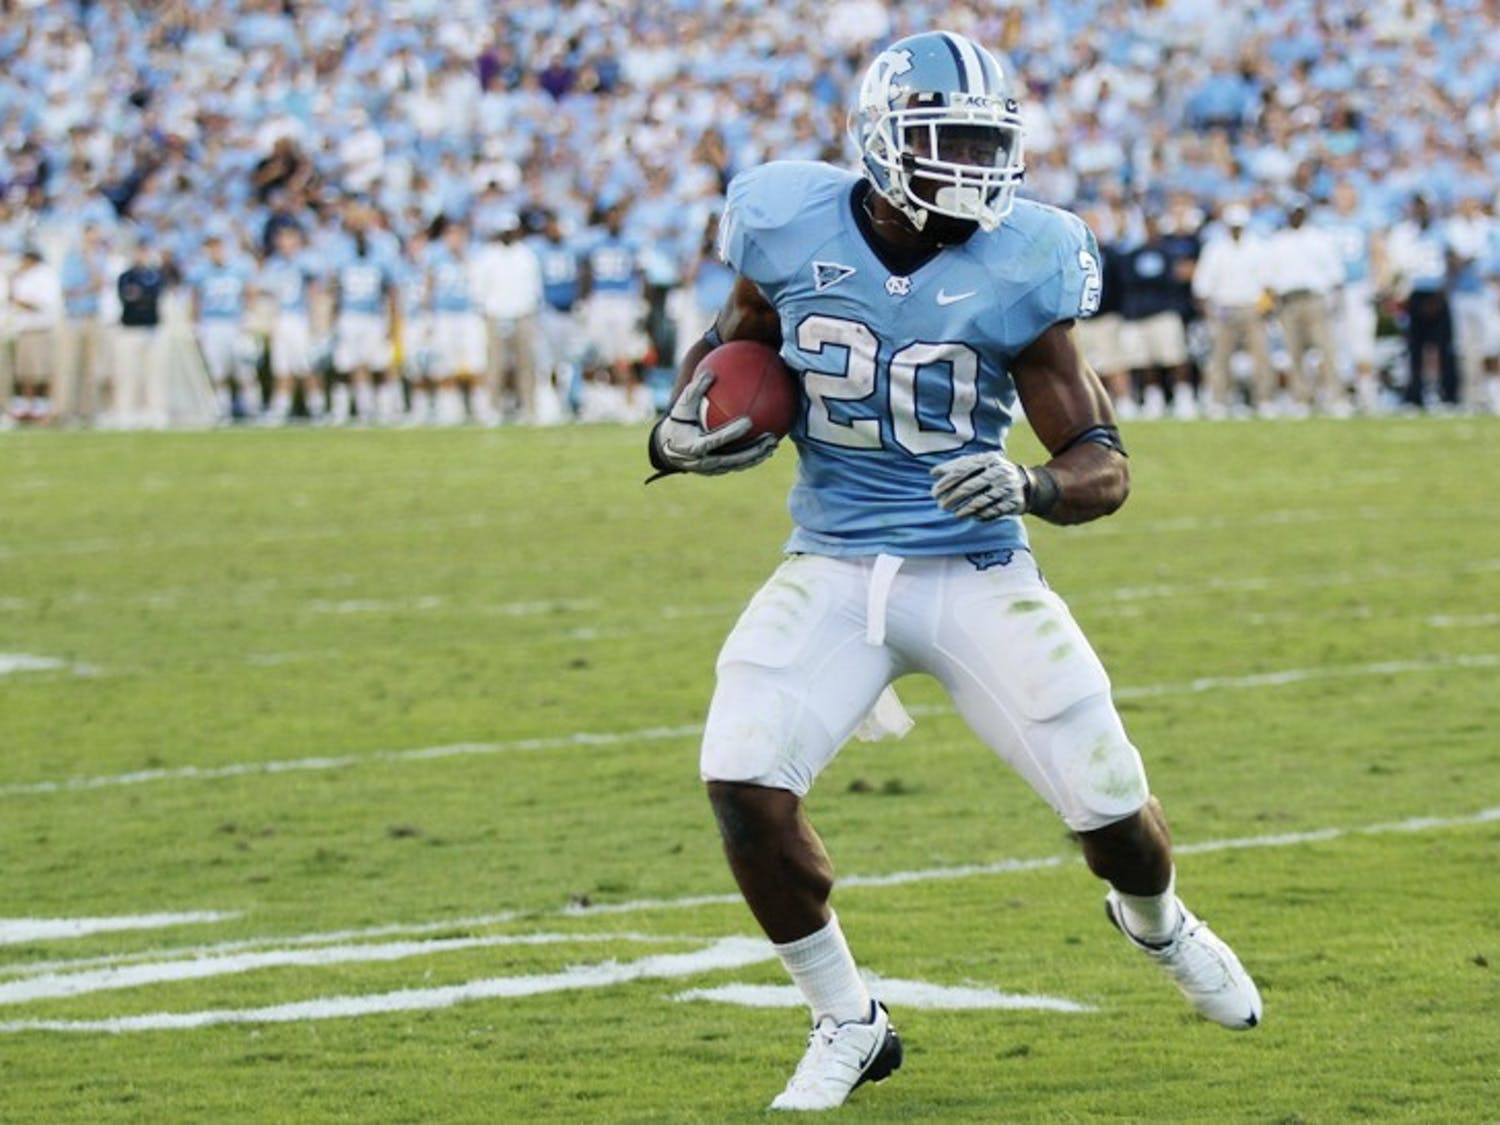 Shaun Draughn tallied three touchdowns against ECU. Draughn rushed for 98 yards in the fourth quarter alone and teamed with Johnny White for 223 yards in the second half.